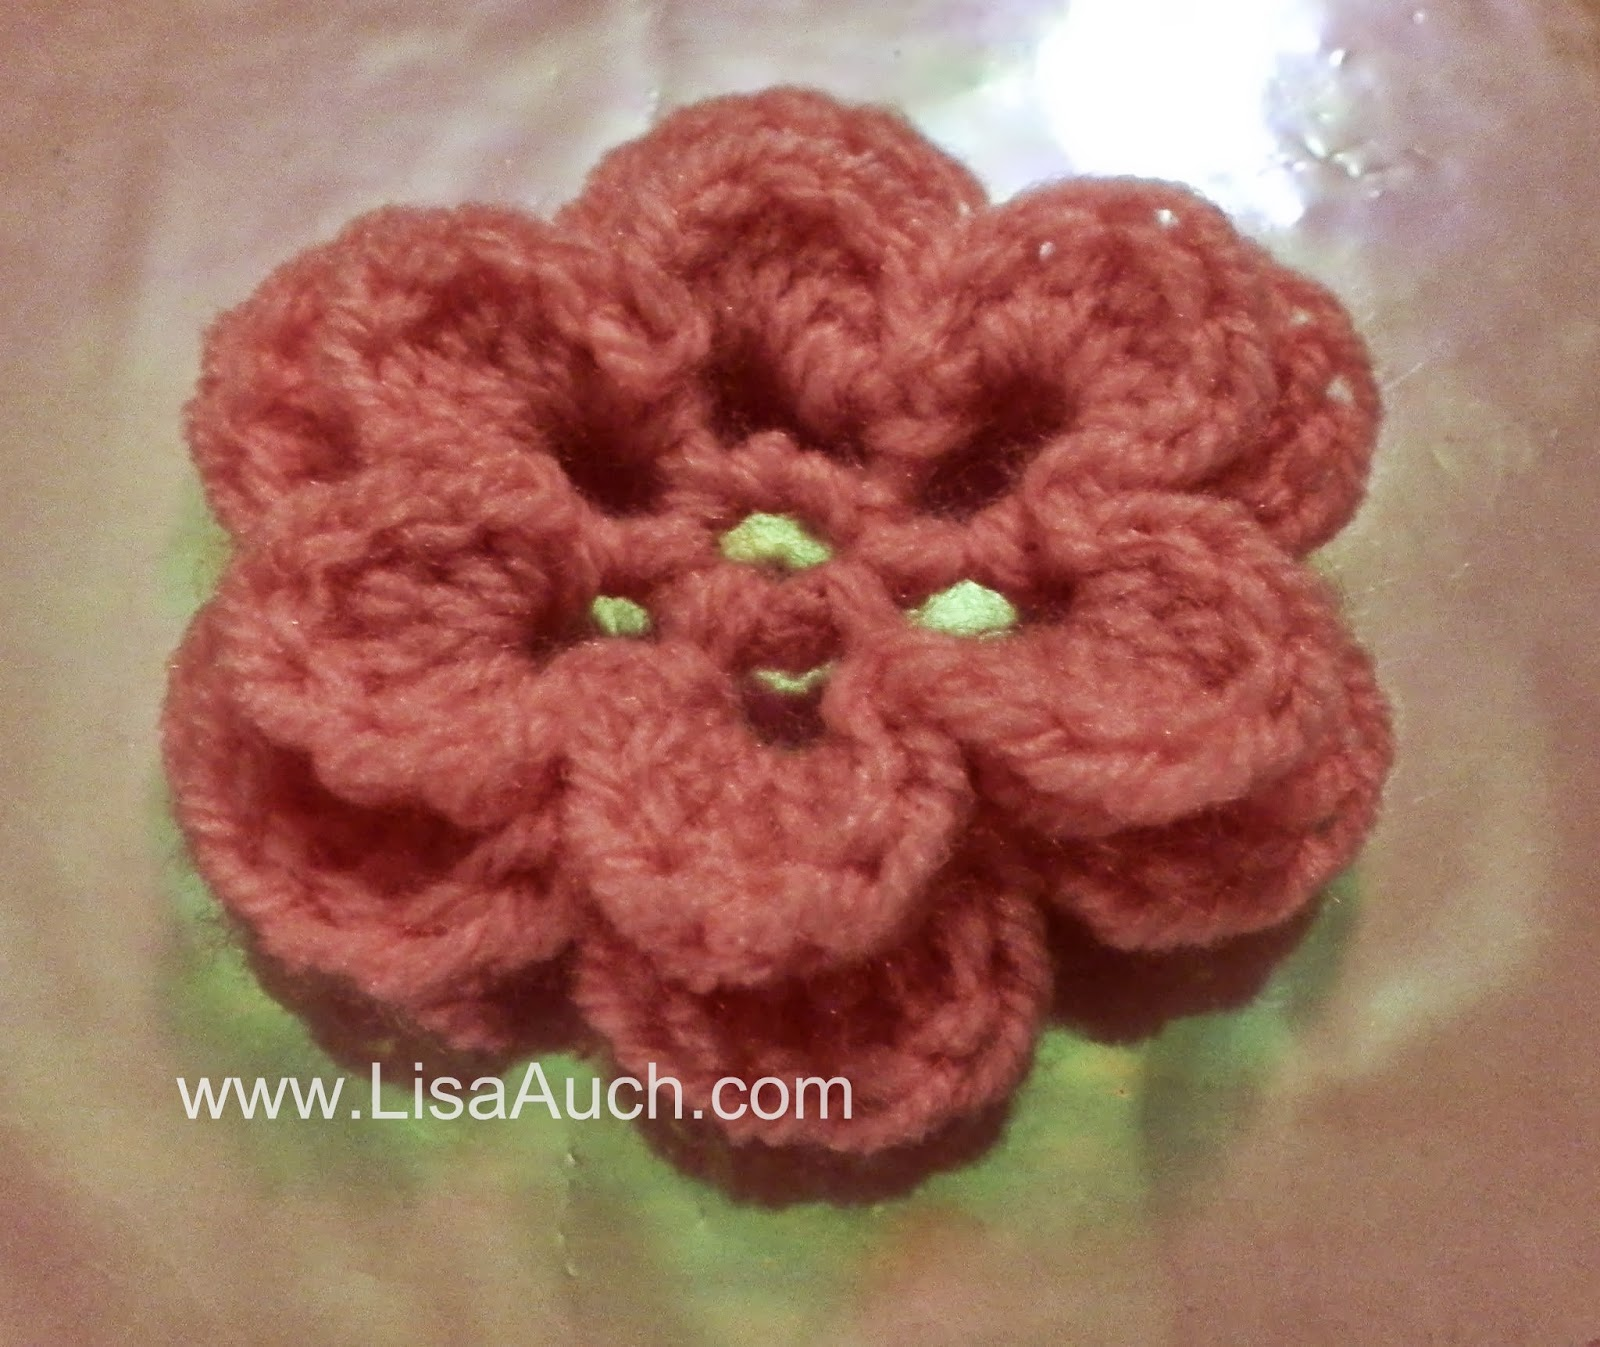 Simple Crochet Flower Free Pattern : Free Crochet Patterns and Designs by LisaAuch: Crochet ...